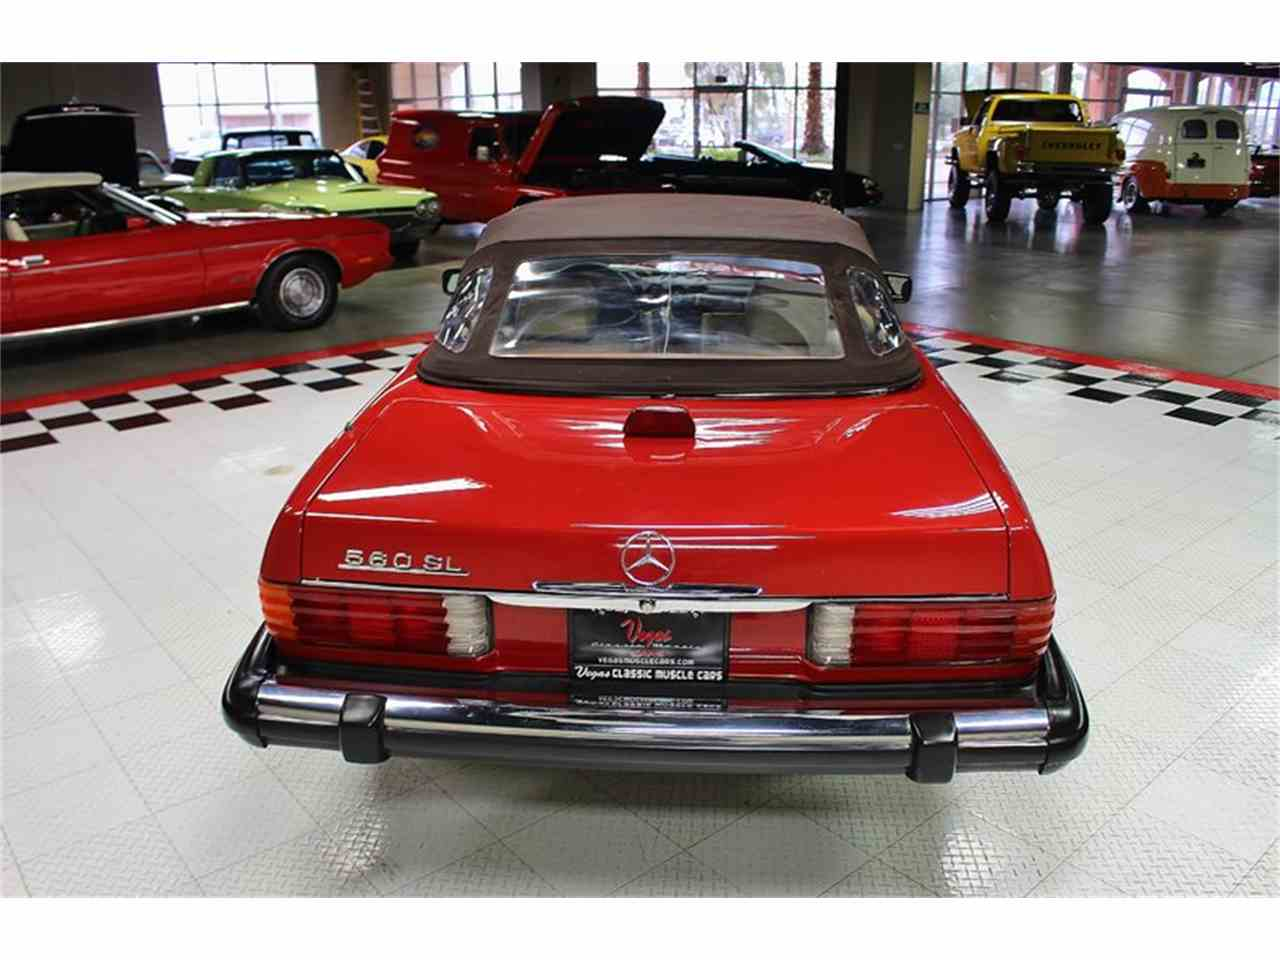 Large Picture of '87 Mercedes-Benz 560SL located in Nevada - $14,995.00 Offered by Vegas Classic Muscle Cars - KVCP